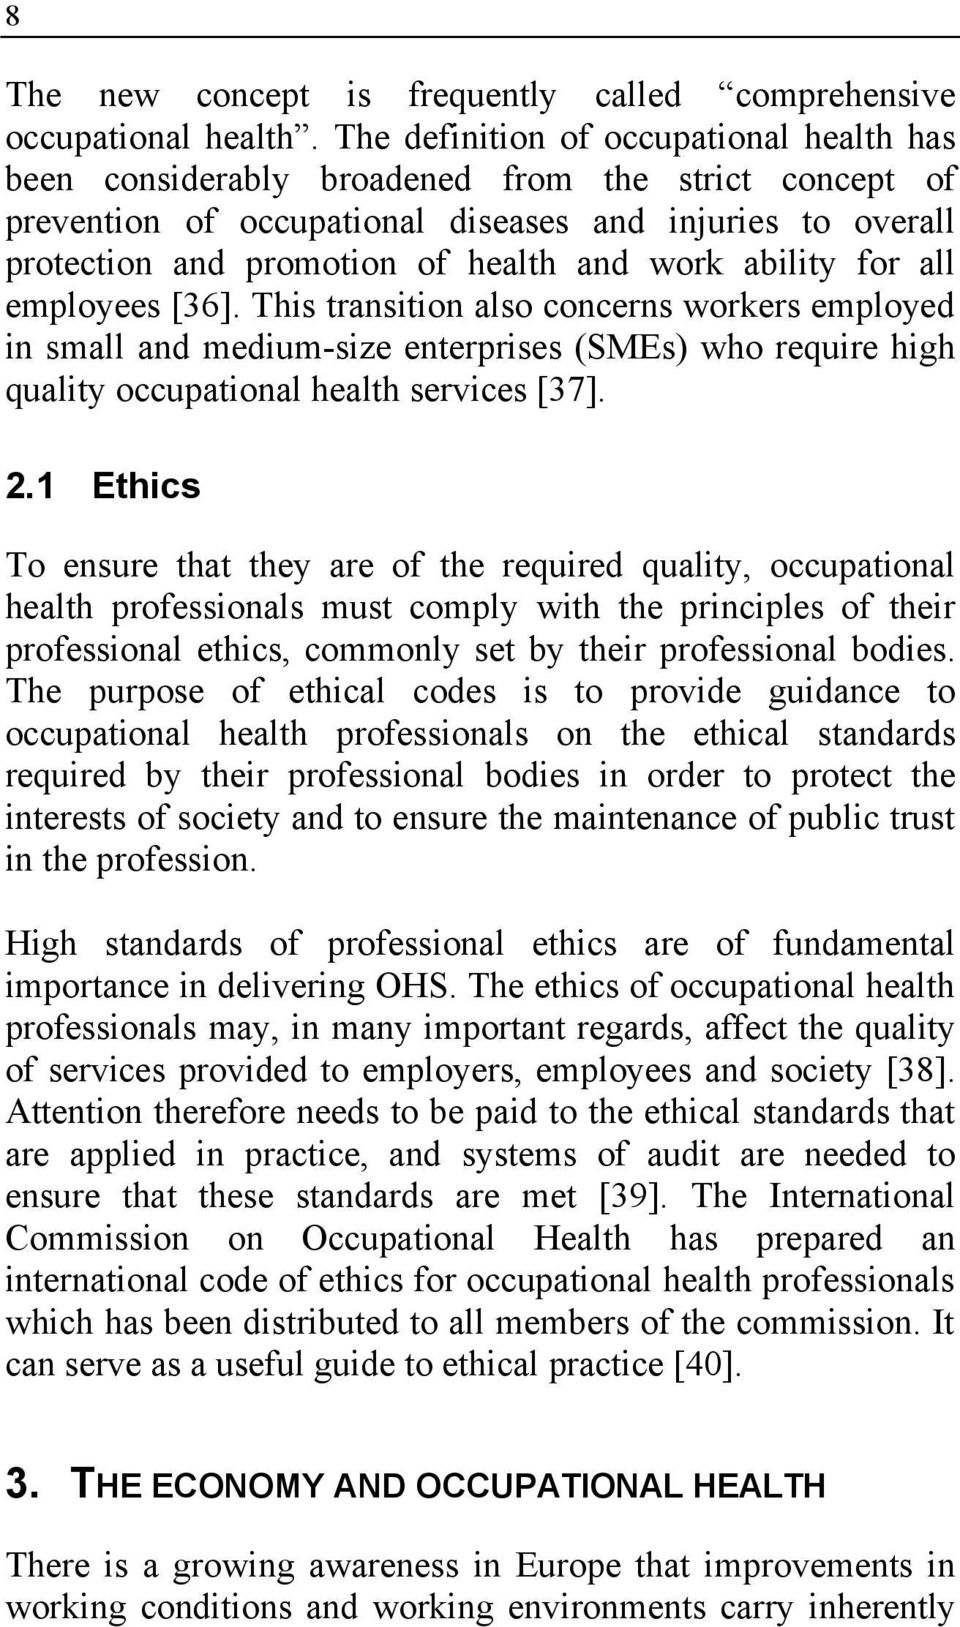 work ability for all employees [36]. This transition also concerns workers employed in small and medium-size enterprises (SMEs) who require high quality occupational health services [37]. 2.